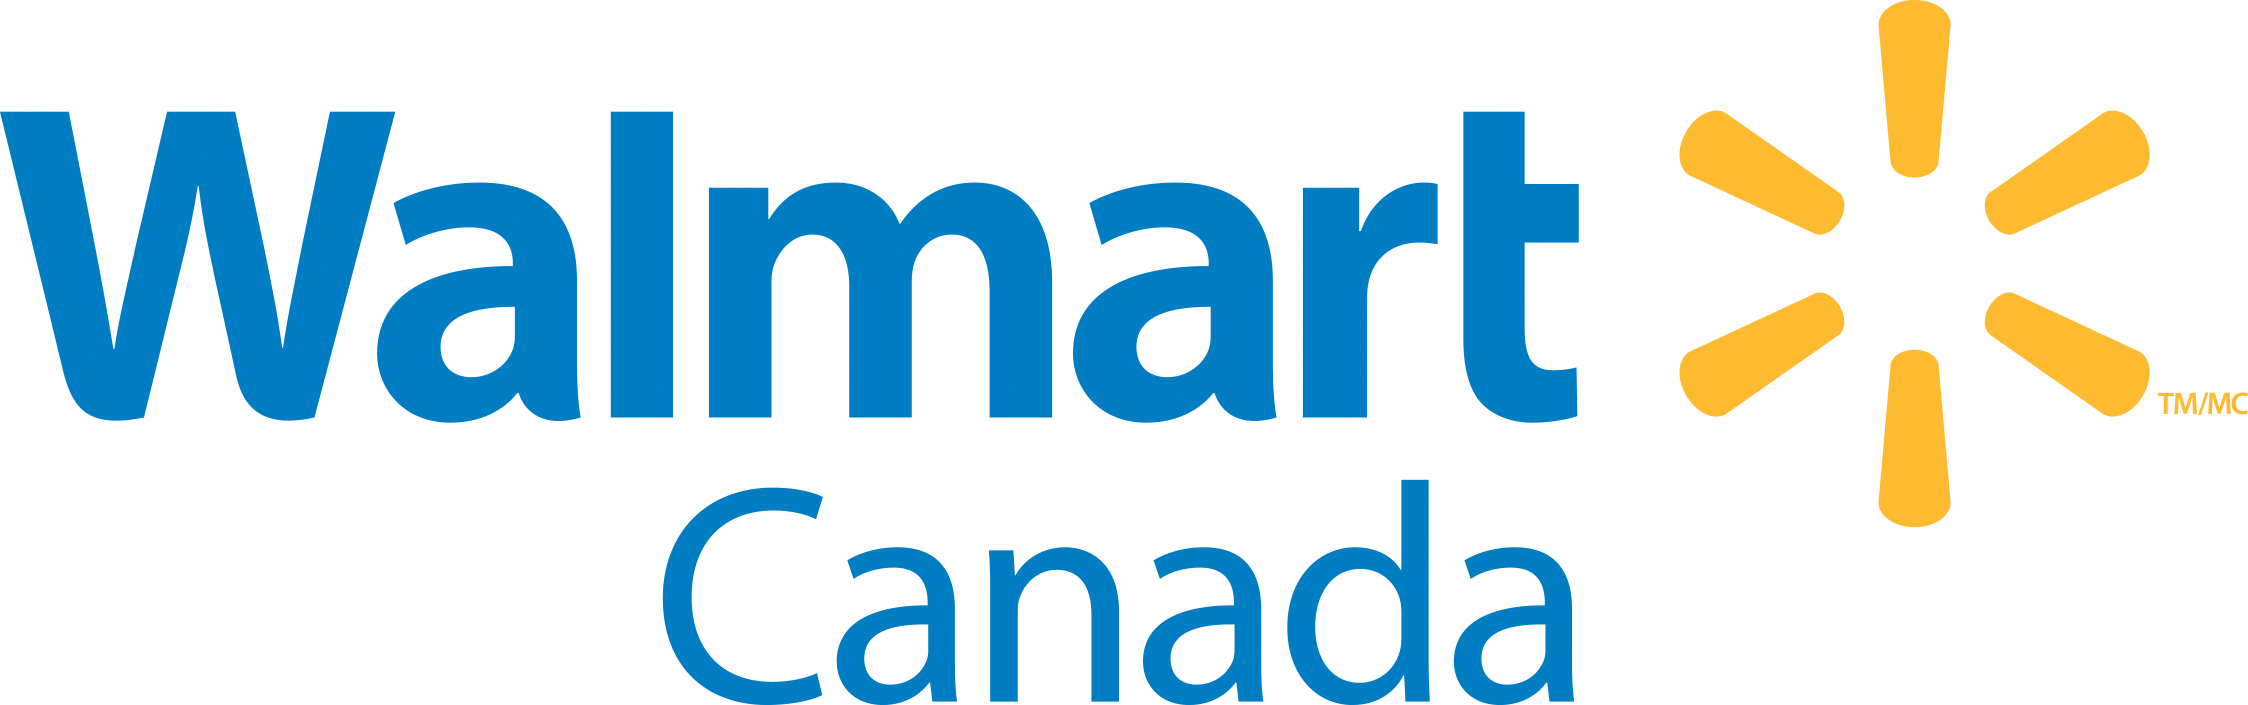 Walmart canada walmart canada follow us gumiabroncs Image collections